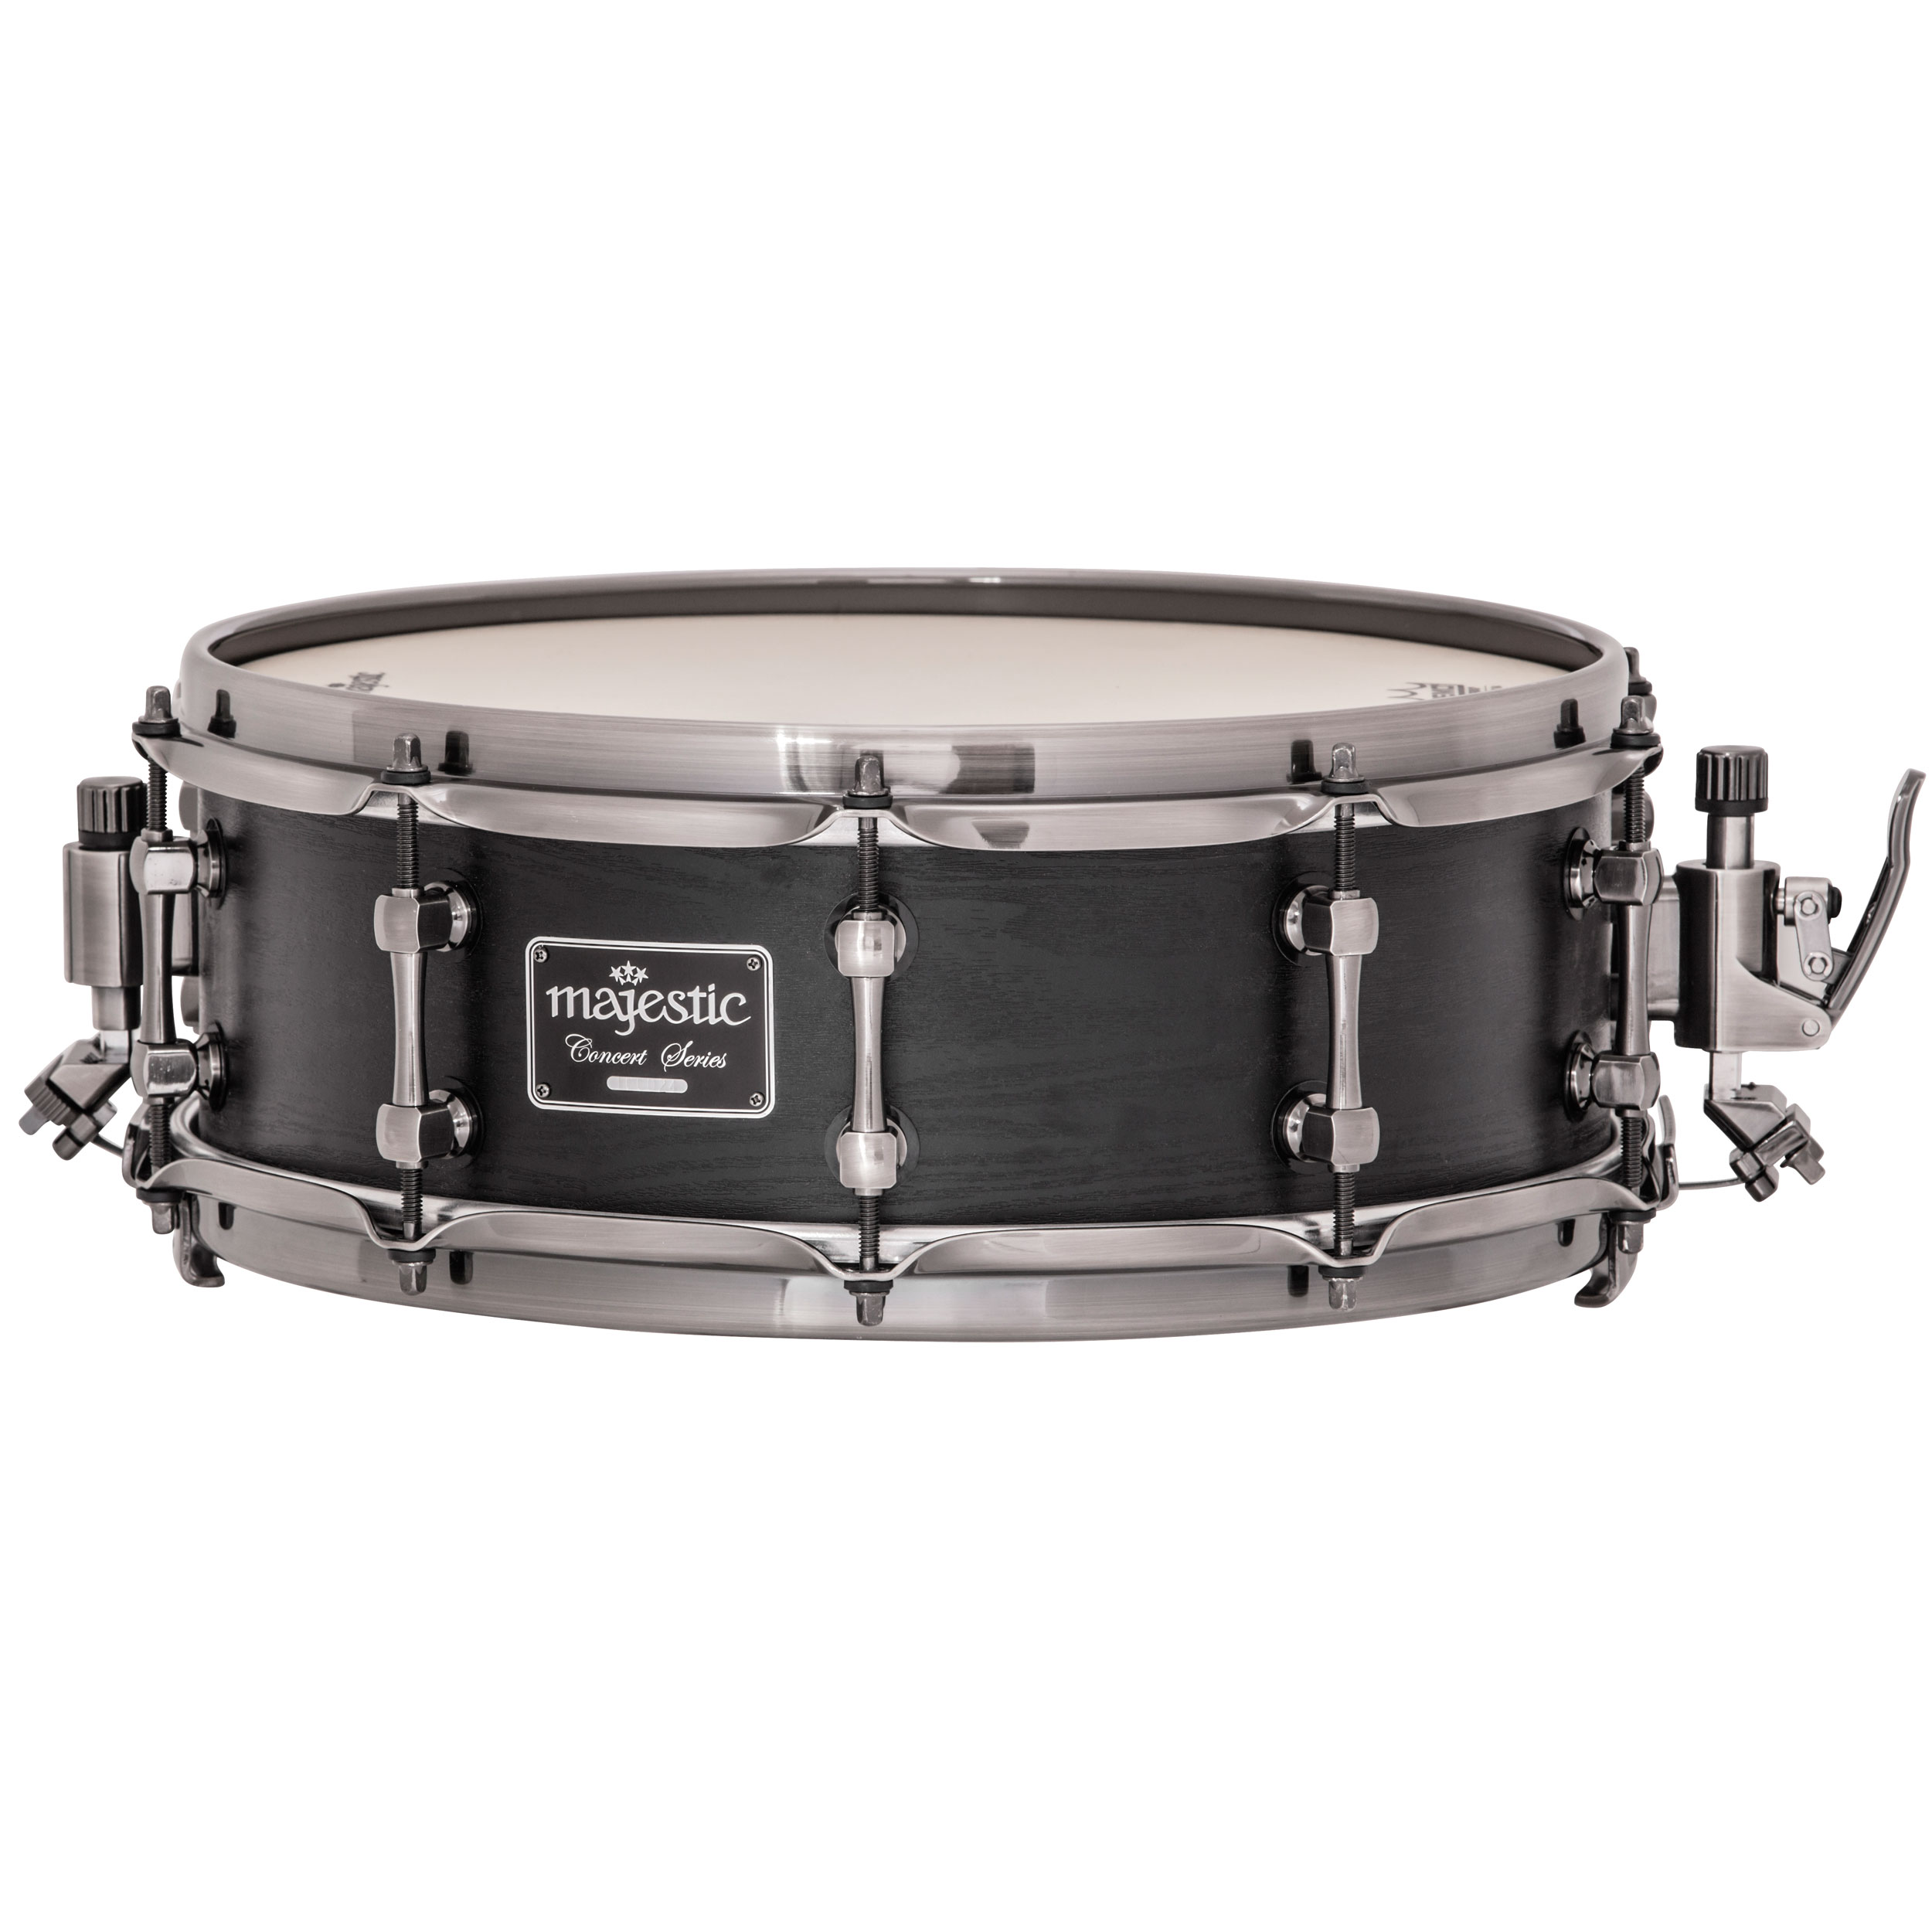 "Majestic 14"" x 5"" Maple Concert Snare Drum"